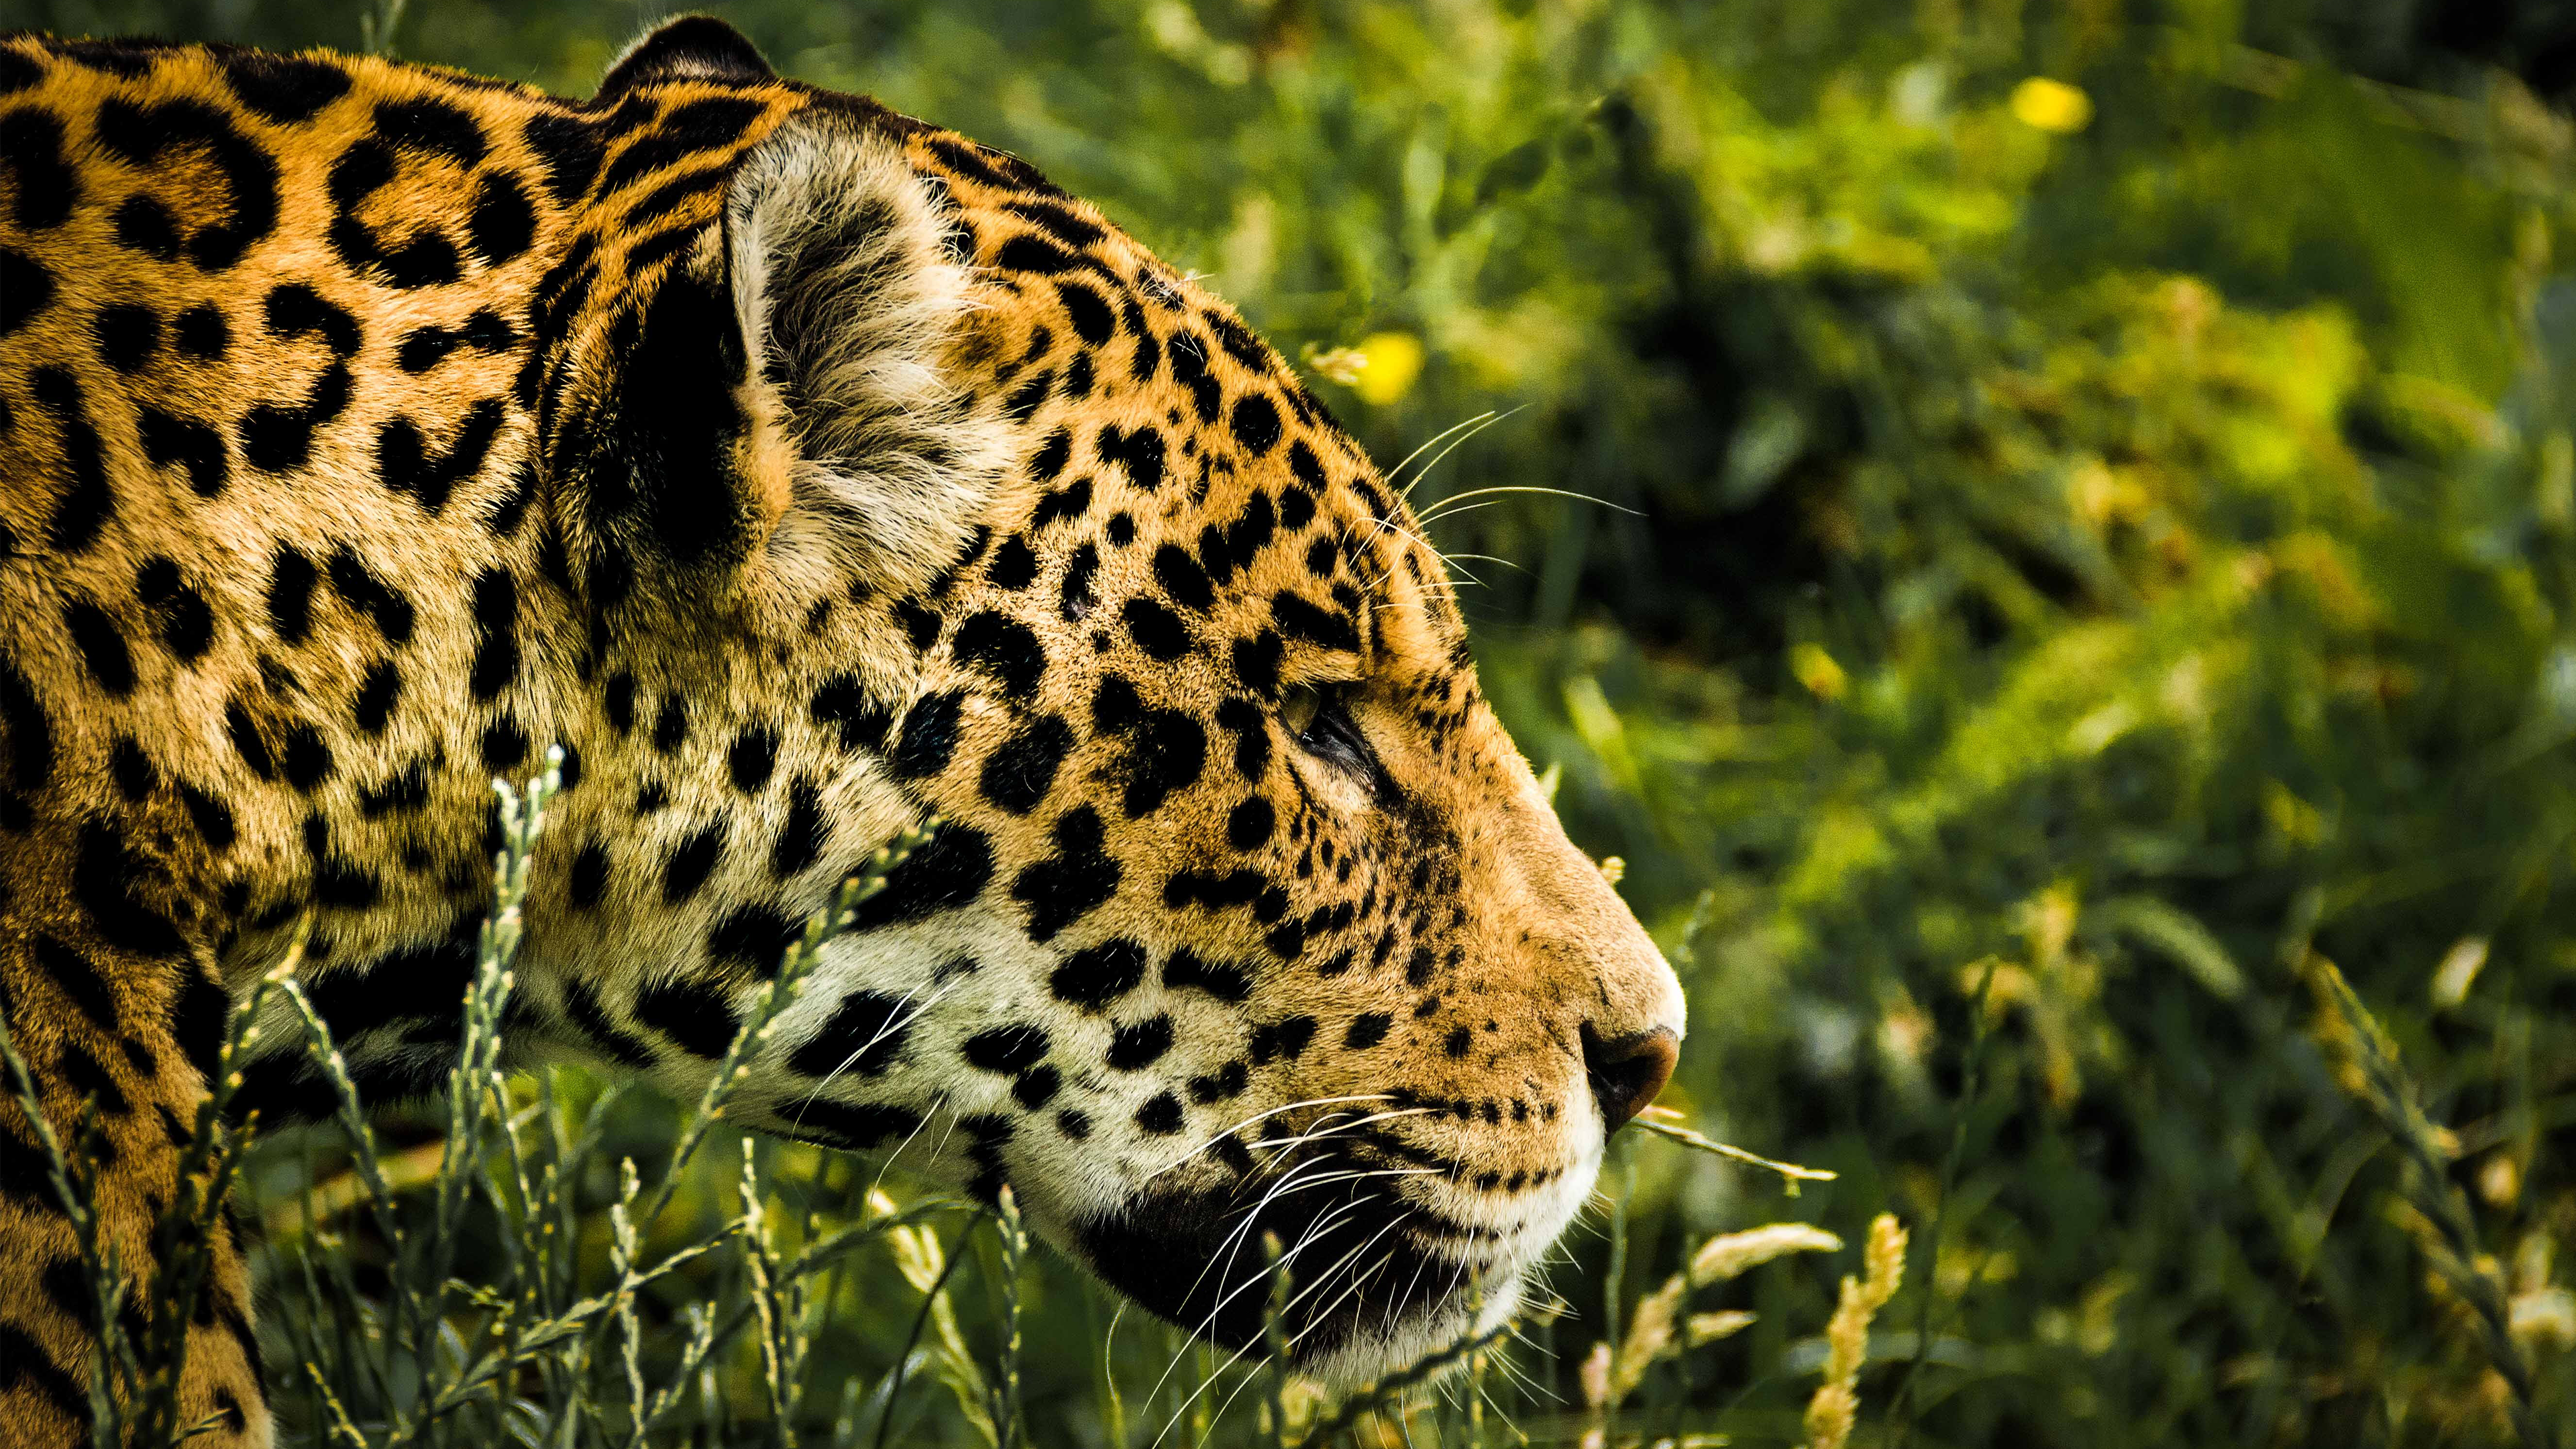 download free hd jaguar in the jungle desktop wallpaper in 4k 0262